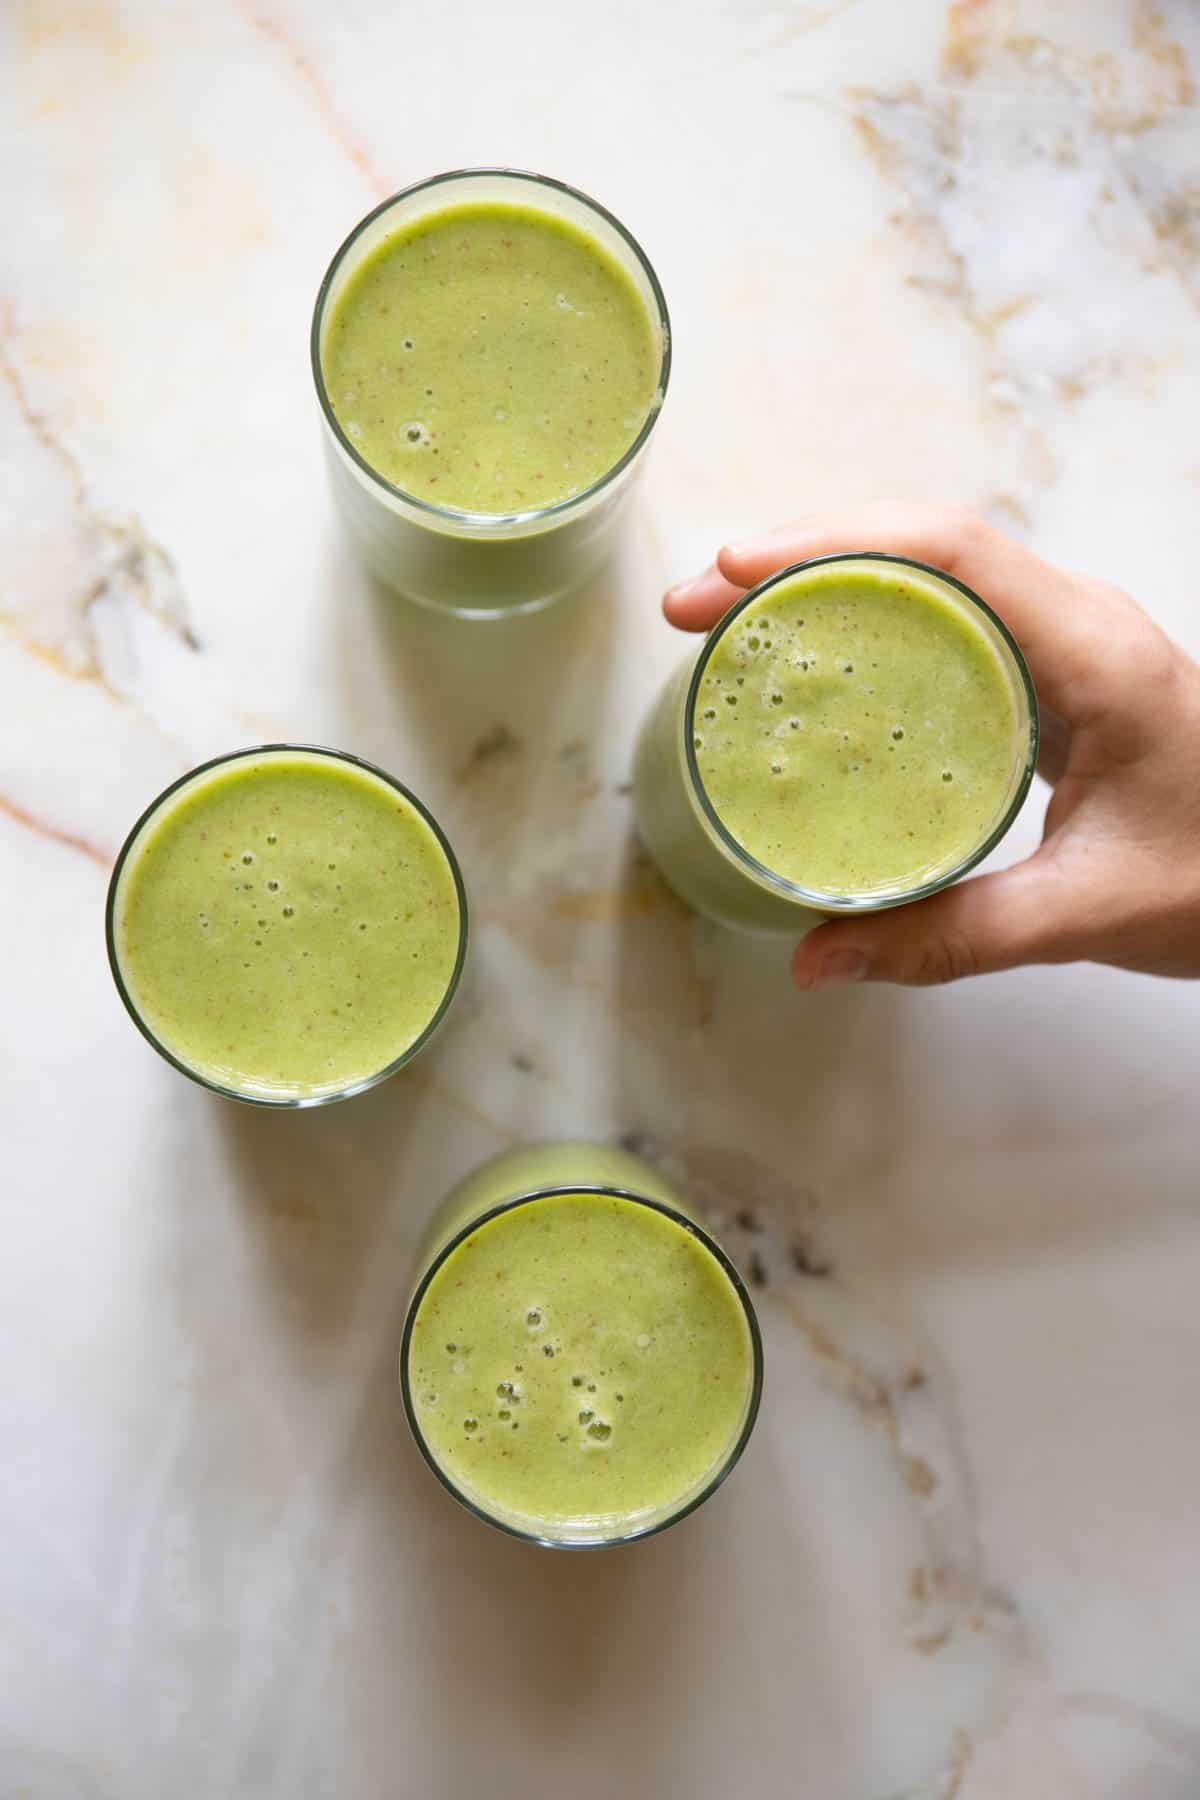 a person is grabbing a green smoothie drink